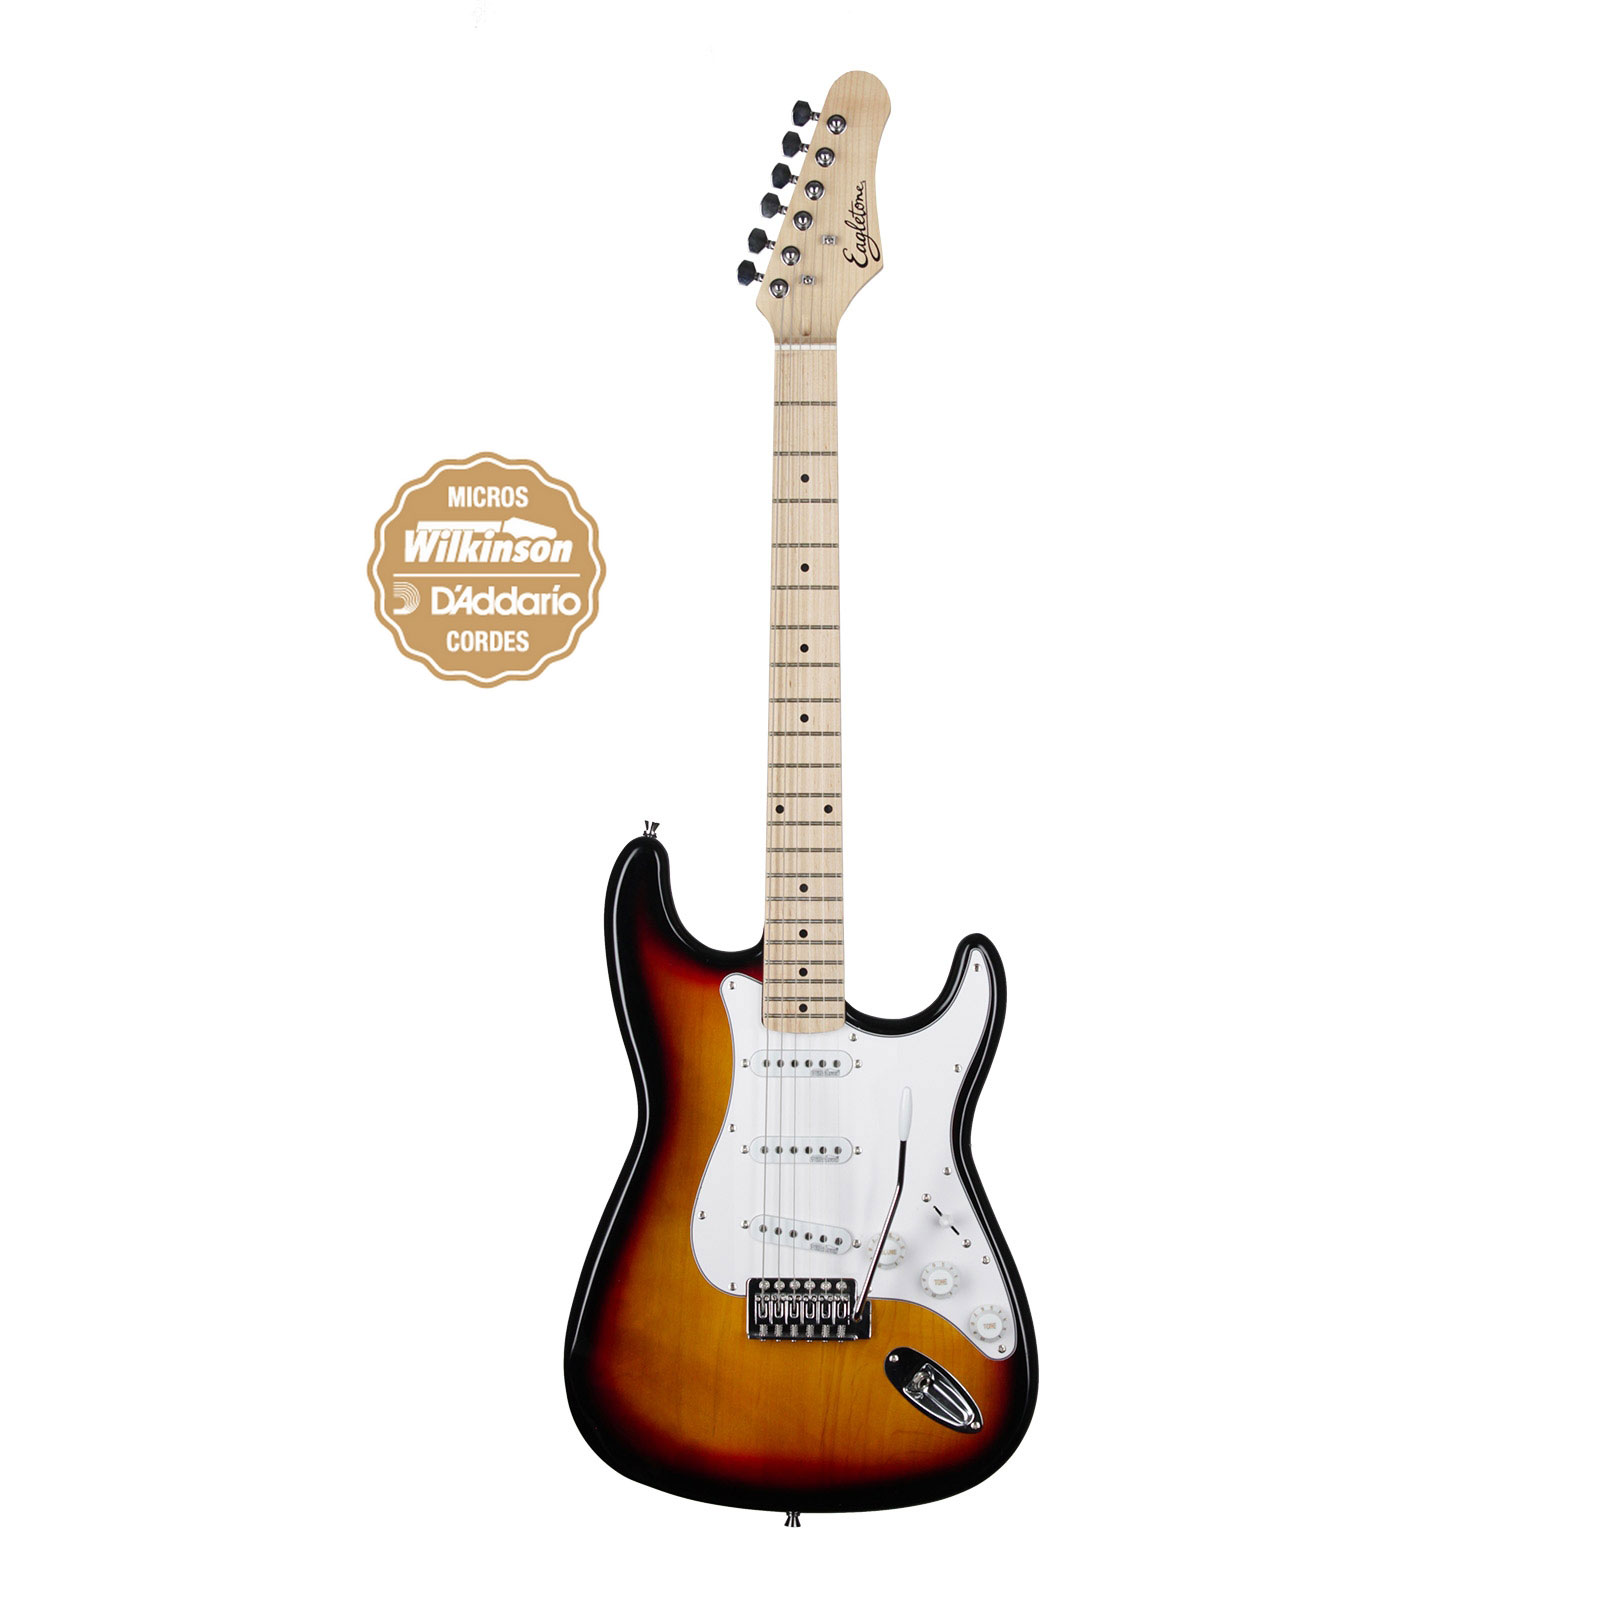 Eagletone Phoenix Mp Sunburst